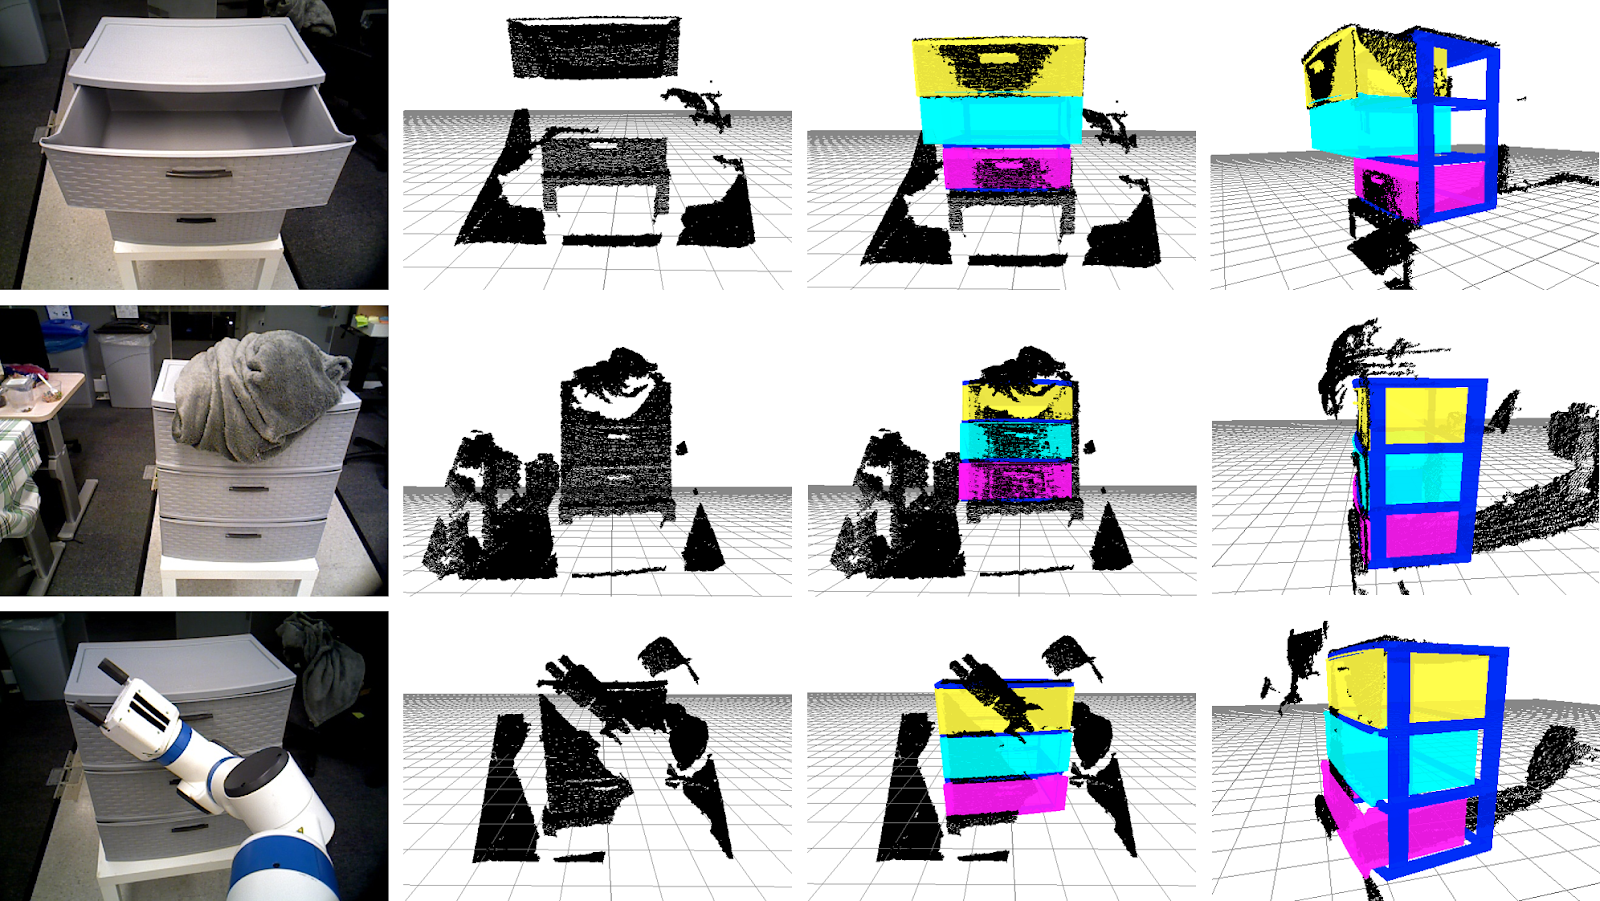 Figure 7: Three scenes where a cabinet with a (blue) frame and three drawers (yellow, cyan, pink) is estimated in point cloud observations that are incomplete due to self and environmental occlusions. From left to right: Original scene, point cloud observation from depth camera, estimated pose viewed from two different views.Video of this work is available here - https://youtu.be/eKdoC8Mq46U.